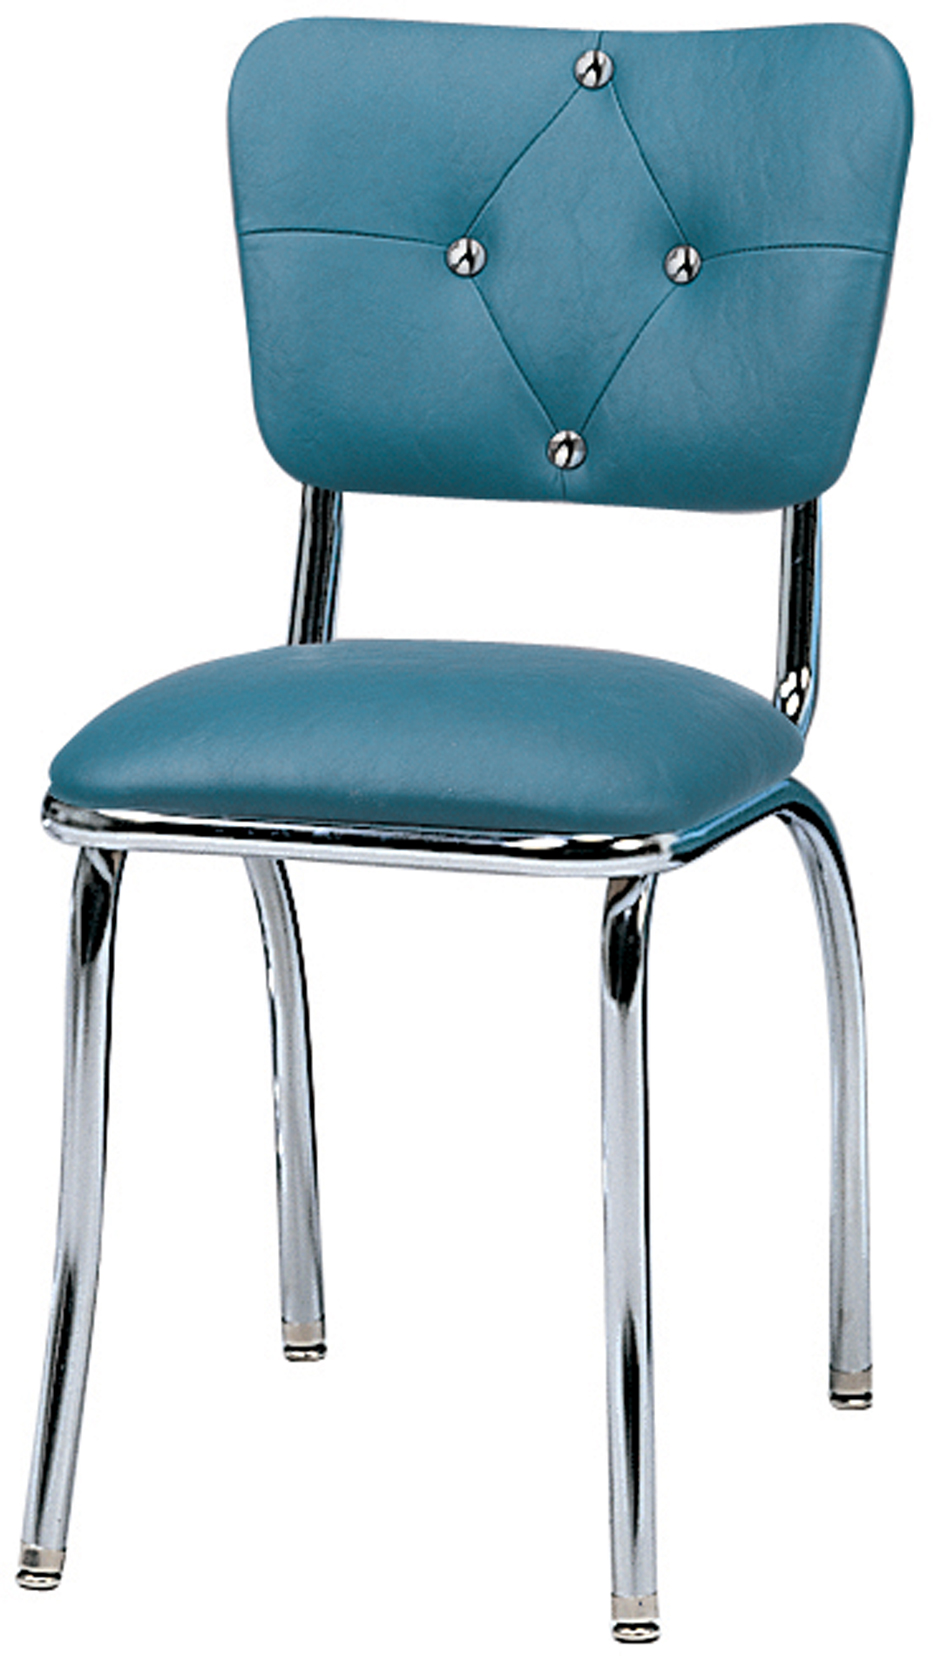 921DT Retro Barstool, Click On Image For Larger View ...